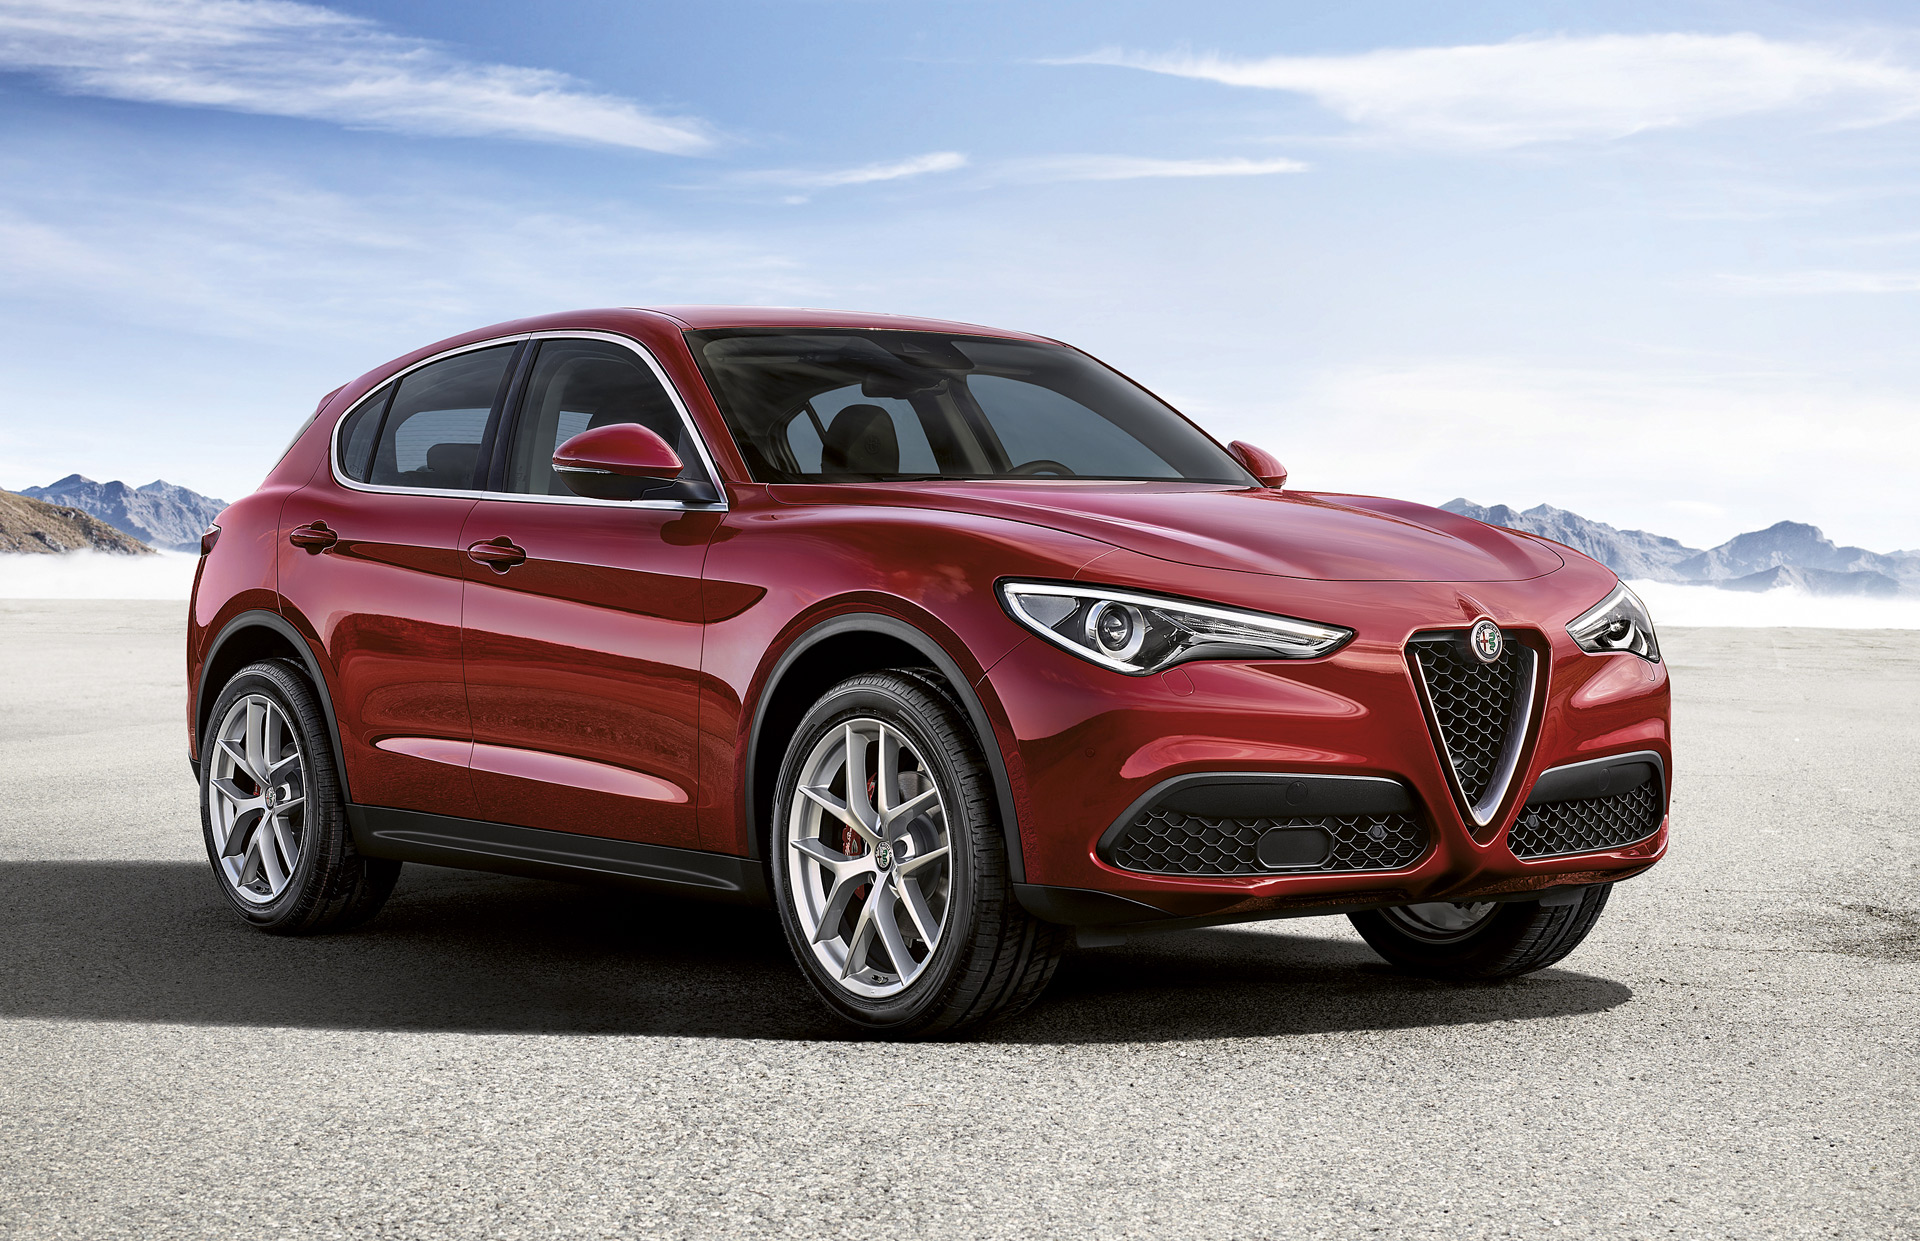 alfa romeo stelvio preview autozaurus. Black Bedroom Furniture Sets. Home Design Ideas